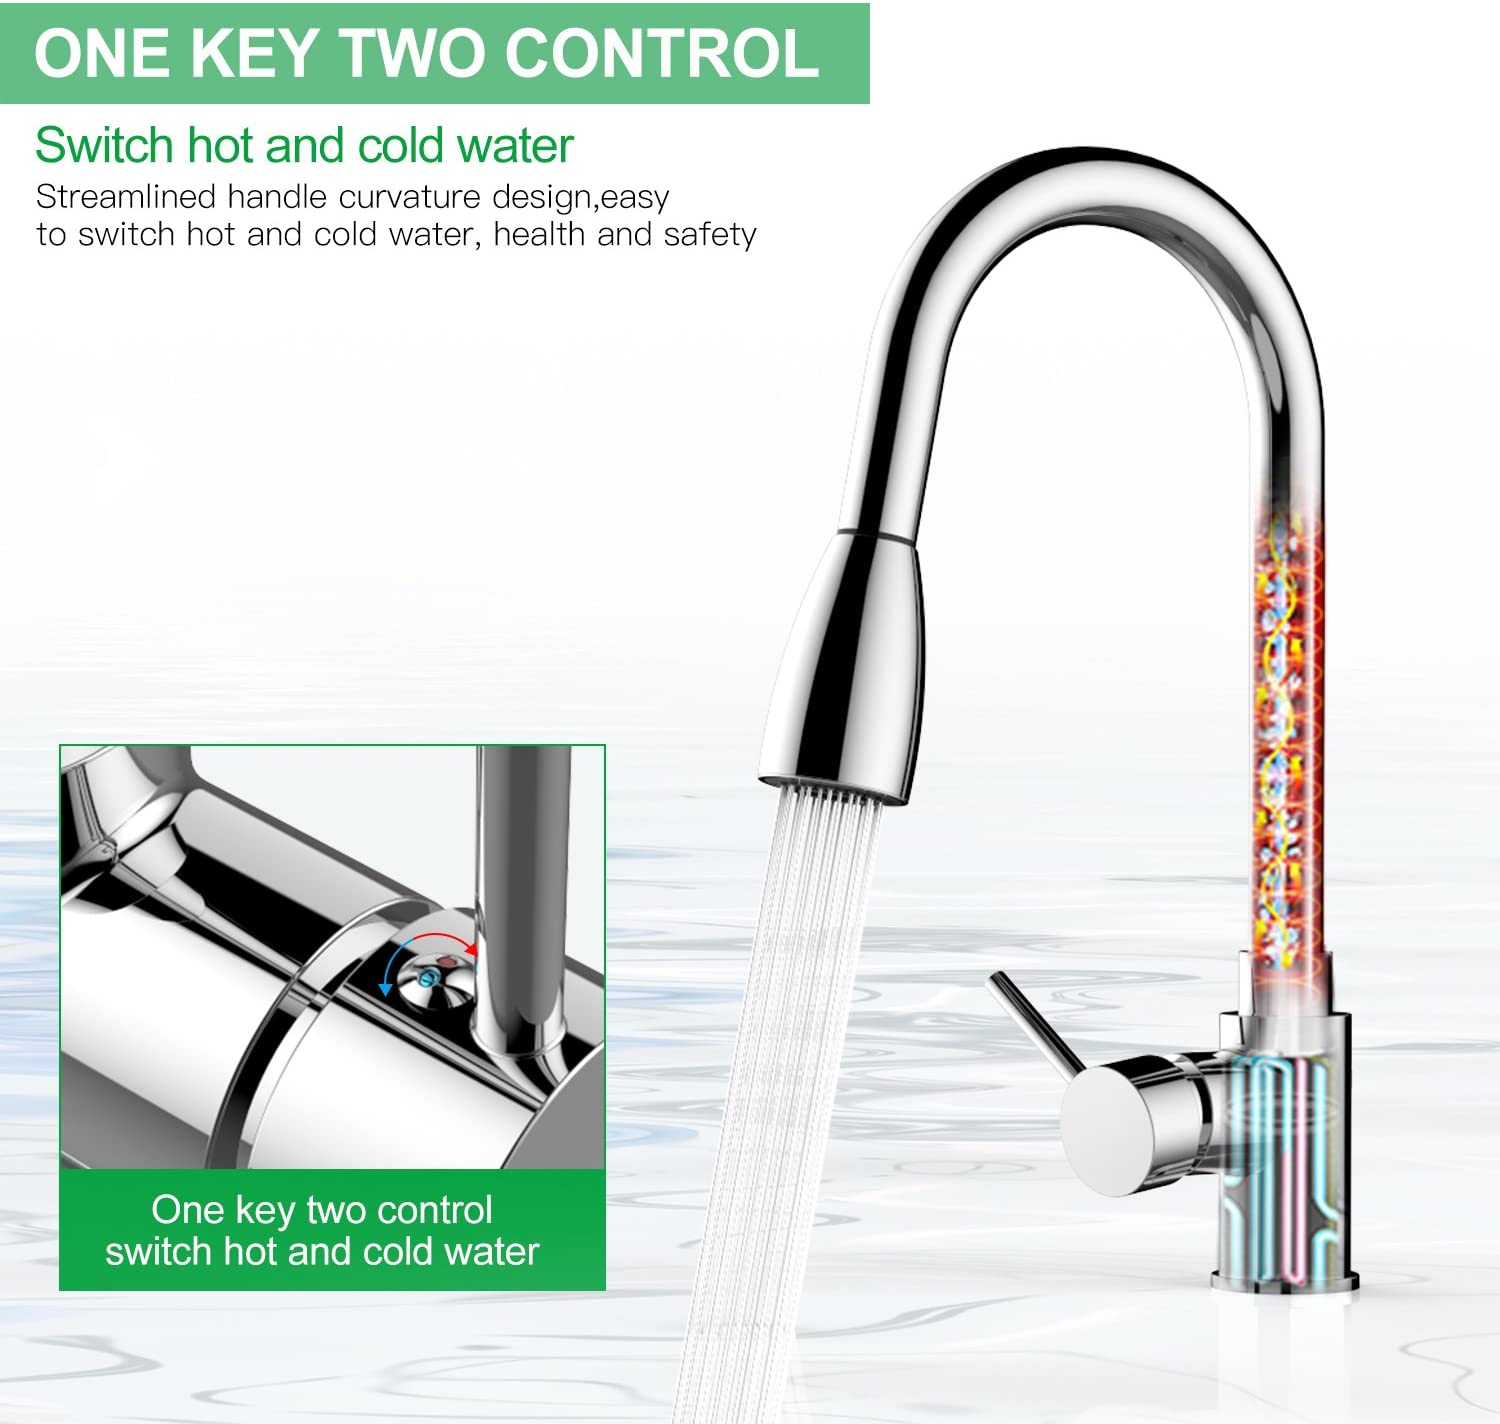 Dual-Mode with Pause Water Outlet Key Chrome. Kitchen Pull Down Faucet Spray Head Replacement Part for Kitchen Sink Faucet